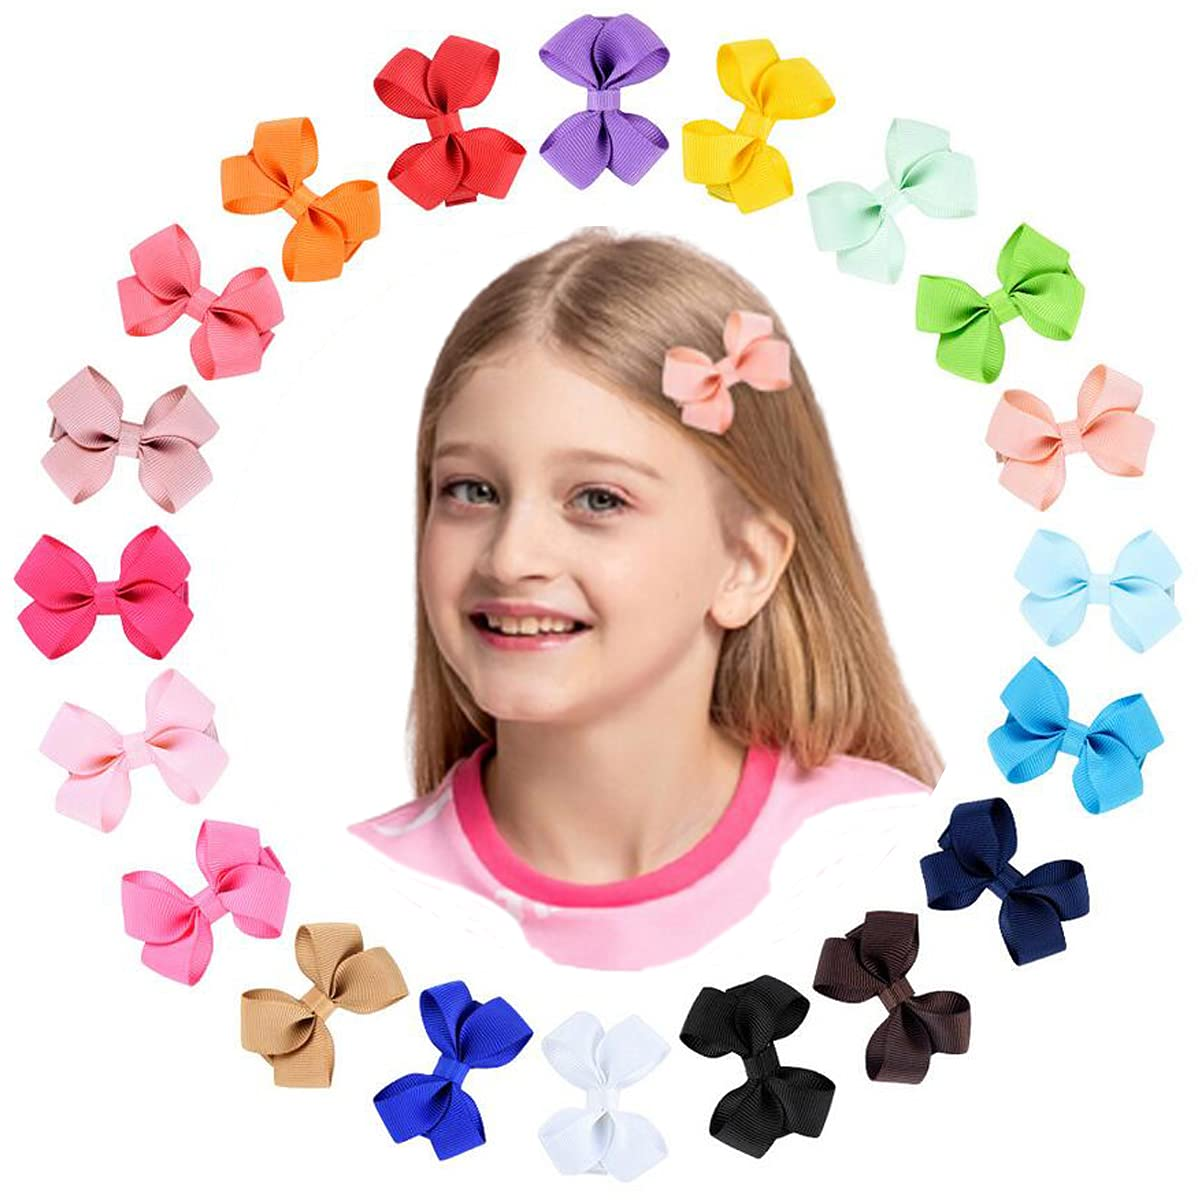 Petunny Baby Girls Hair Bow Clips,40Pcs Grosgrain Ribbon Hair Bows Clips Solid Color Alligator Clips Hair Accessories For Baby Girls Infants Toddlers Teens Kids Children (Random Color,20 Pairs)